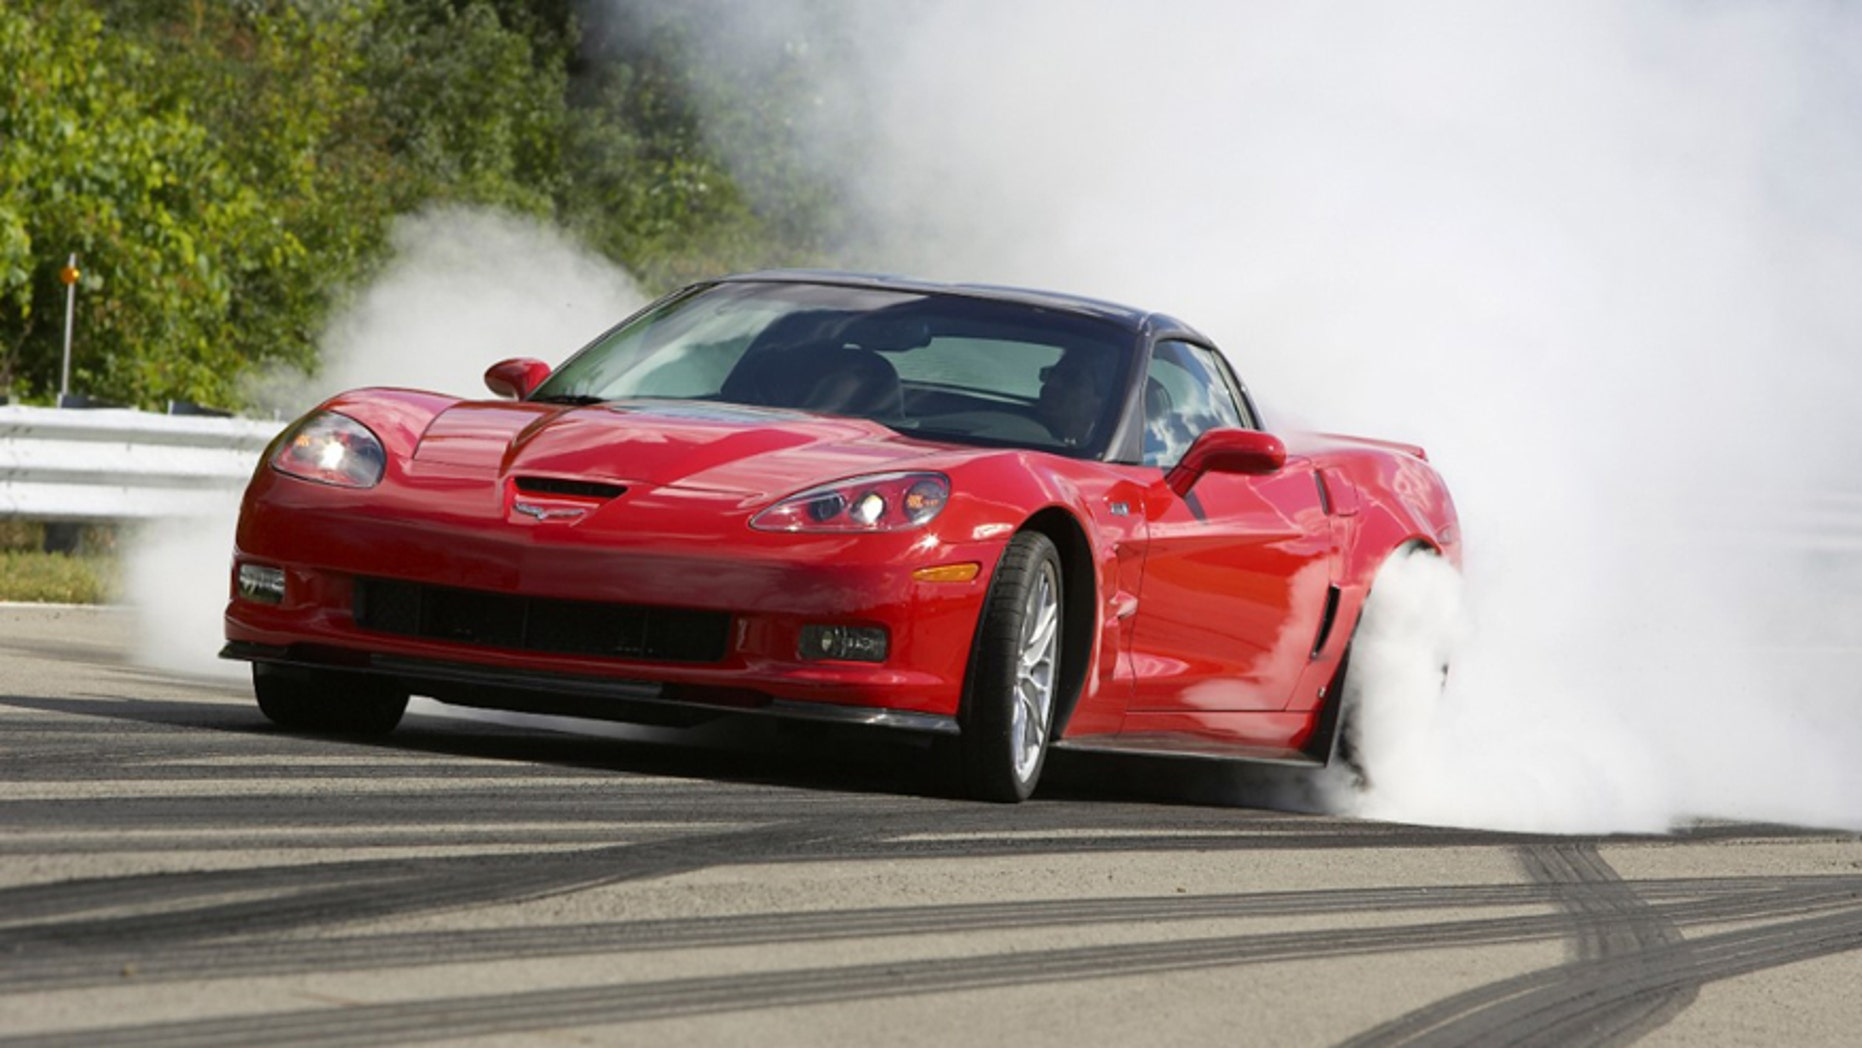 Most Powerful American Cars-2013 Chevrolet Corvette ZR1